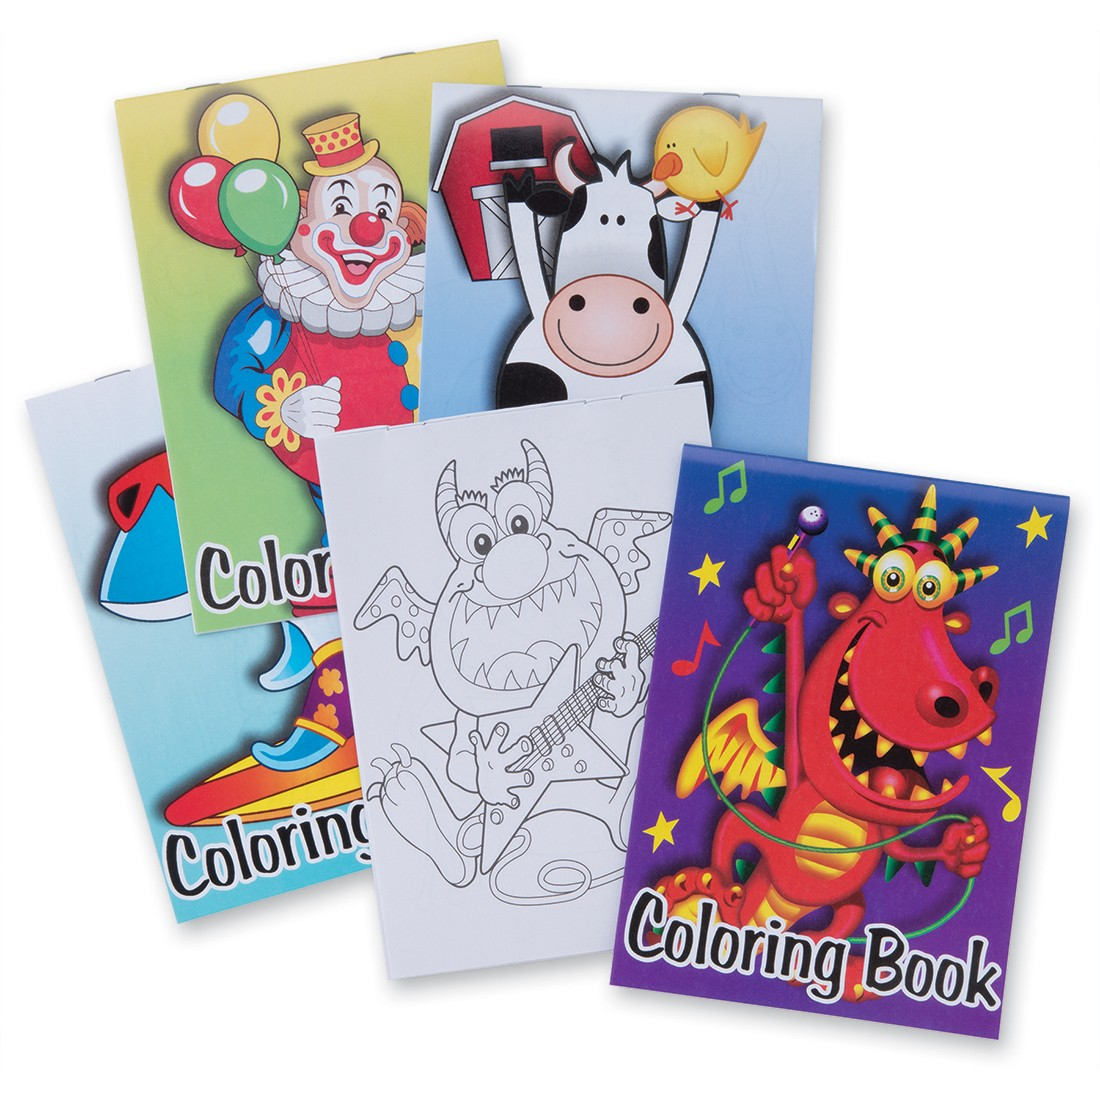 Fun Coloring Books - Color Activities from SmileMakers